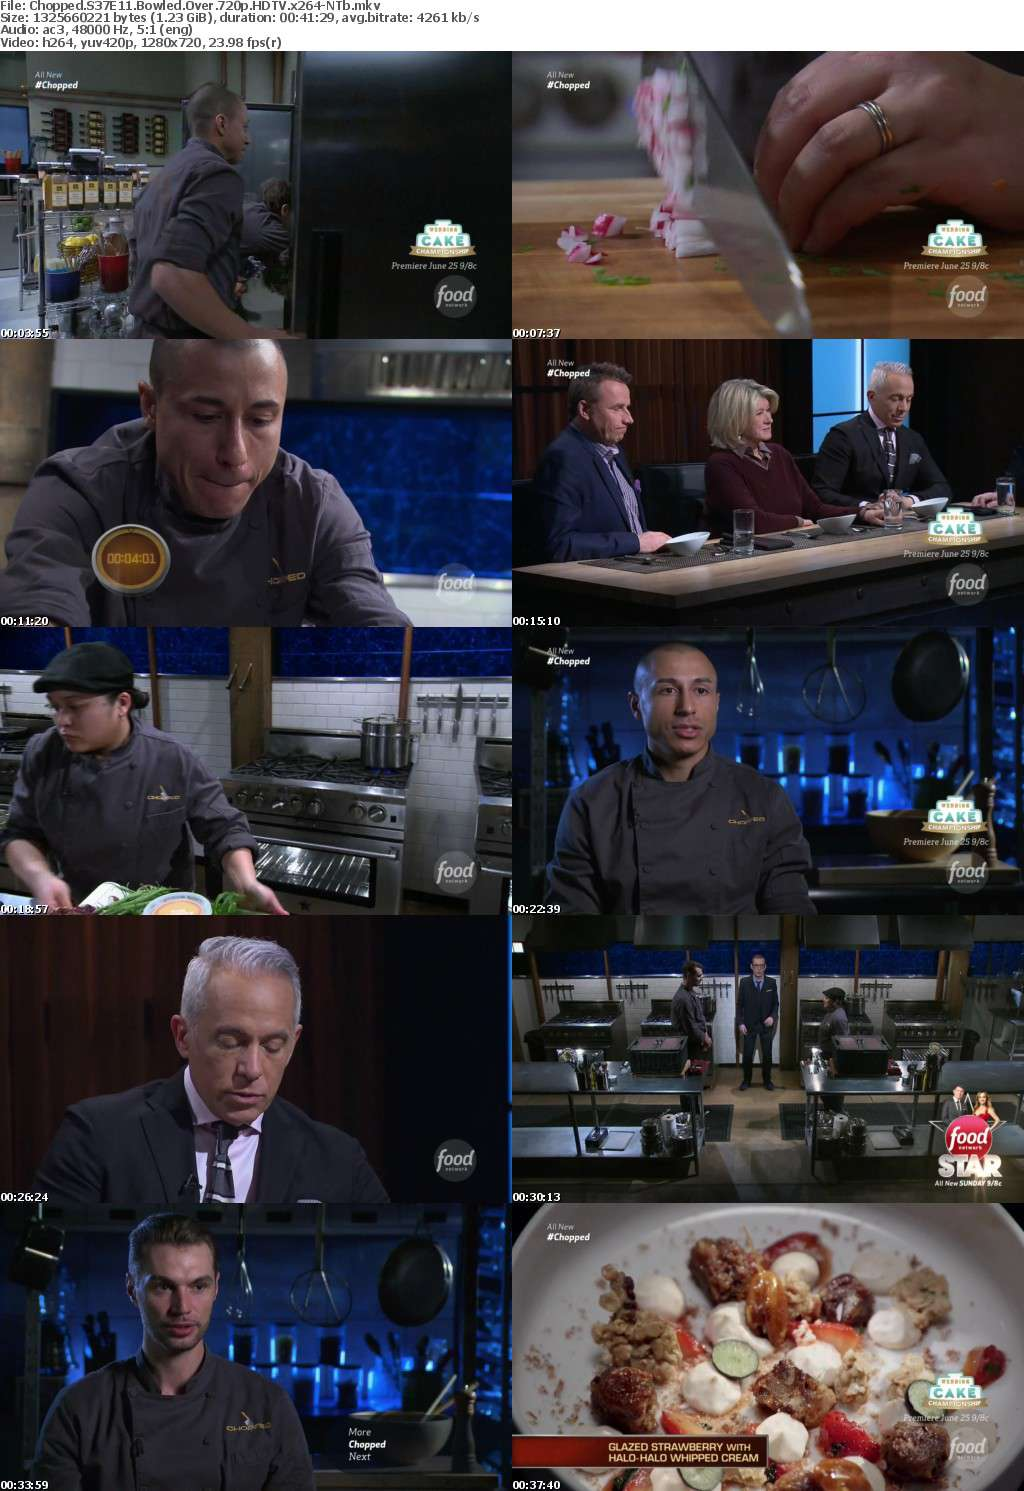 Chopped S37E11 Bowled Over 720p HDTV x264-NTb